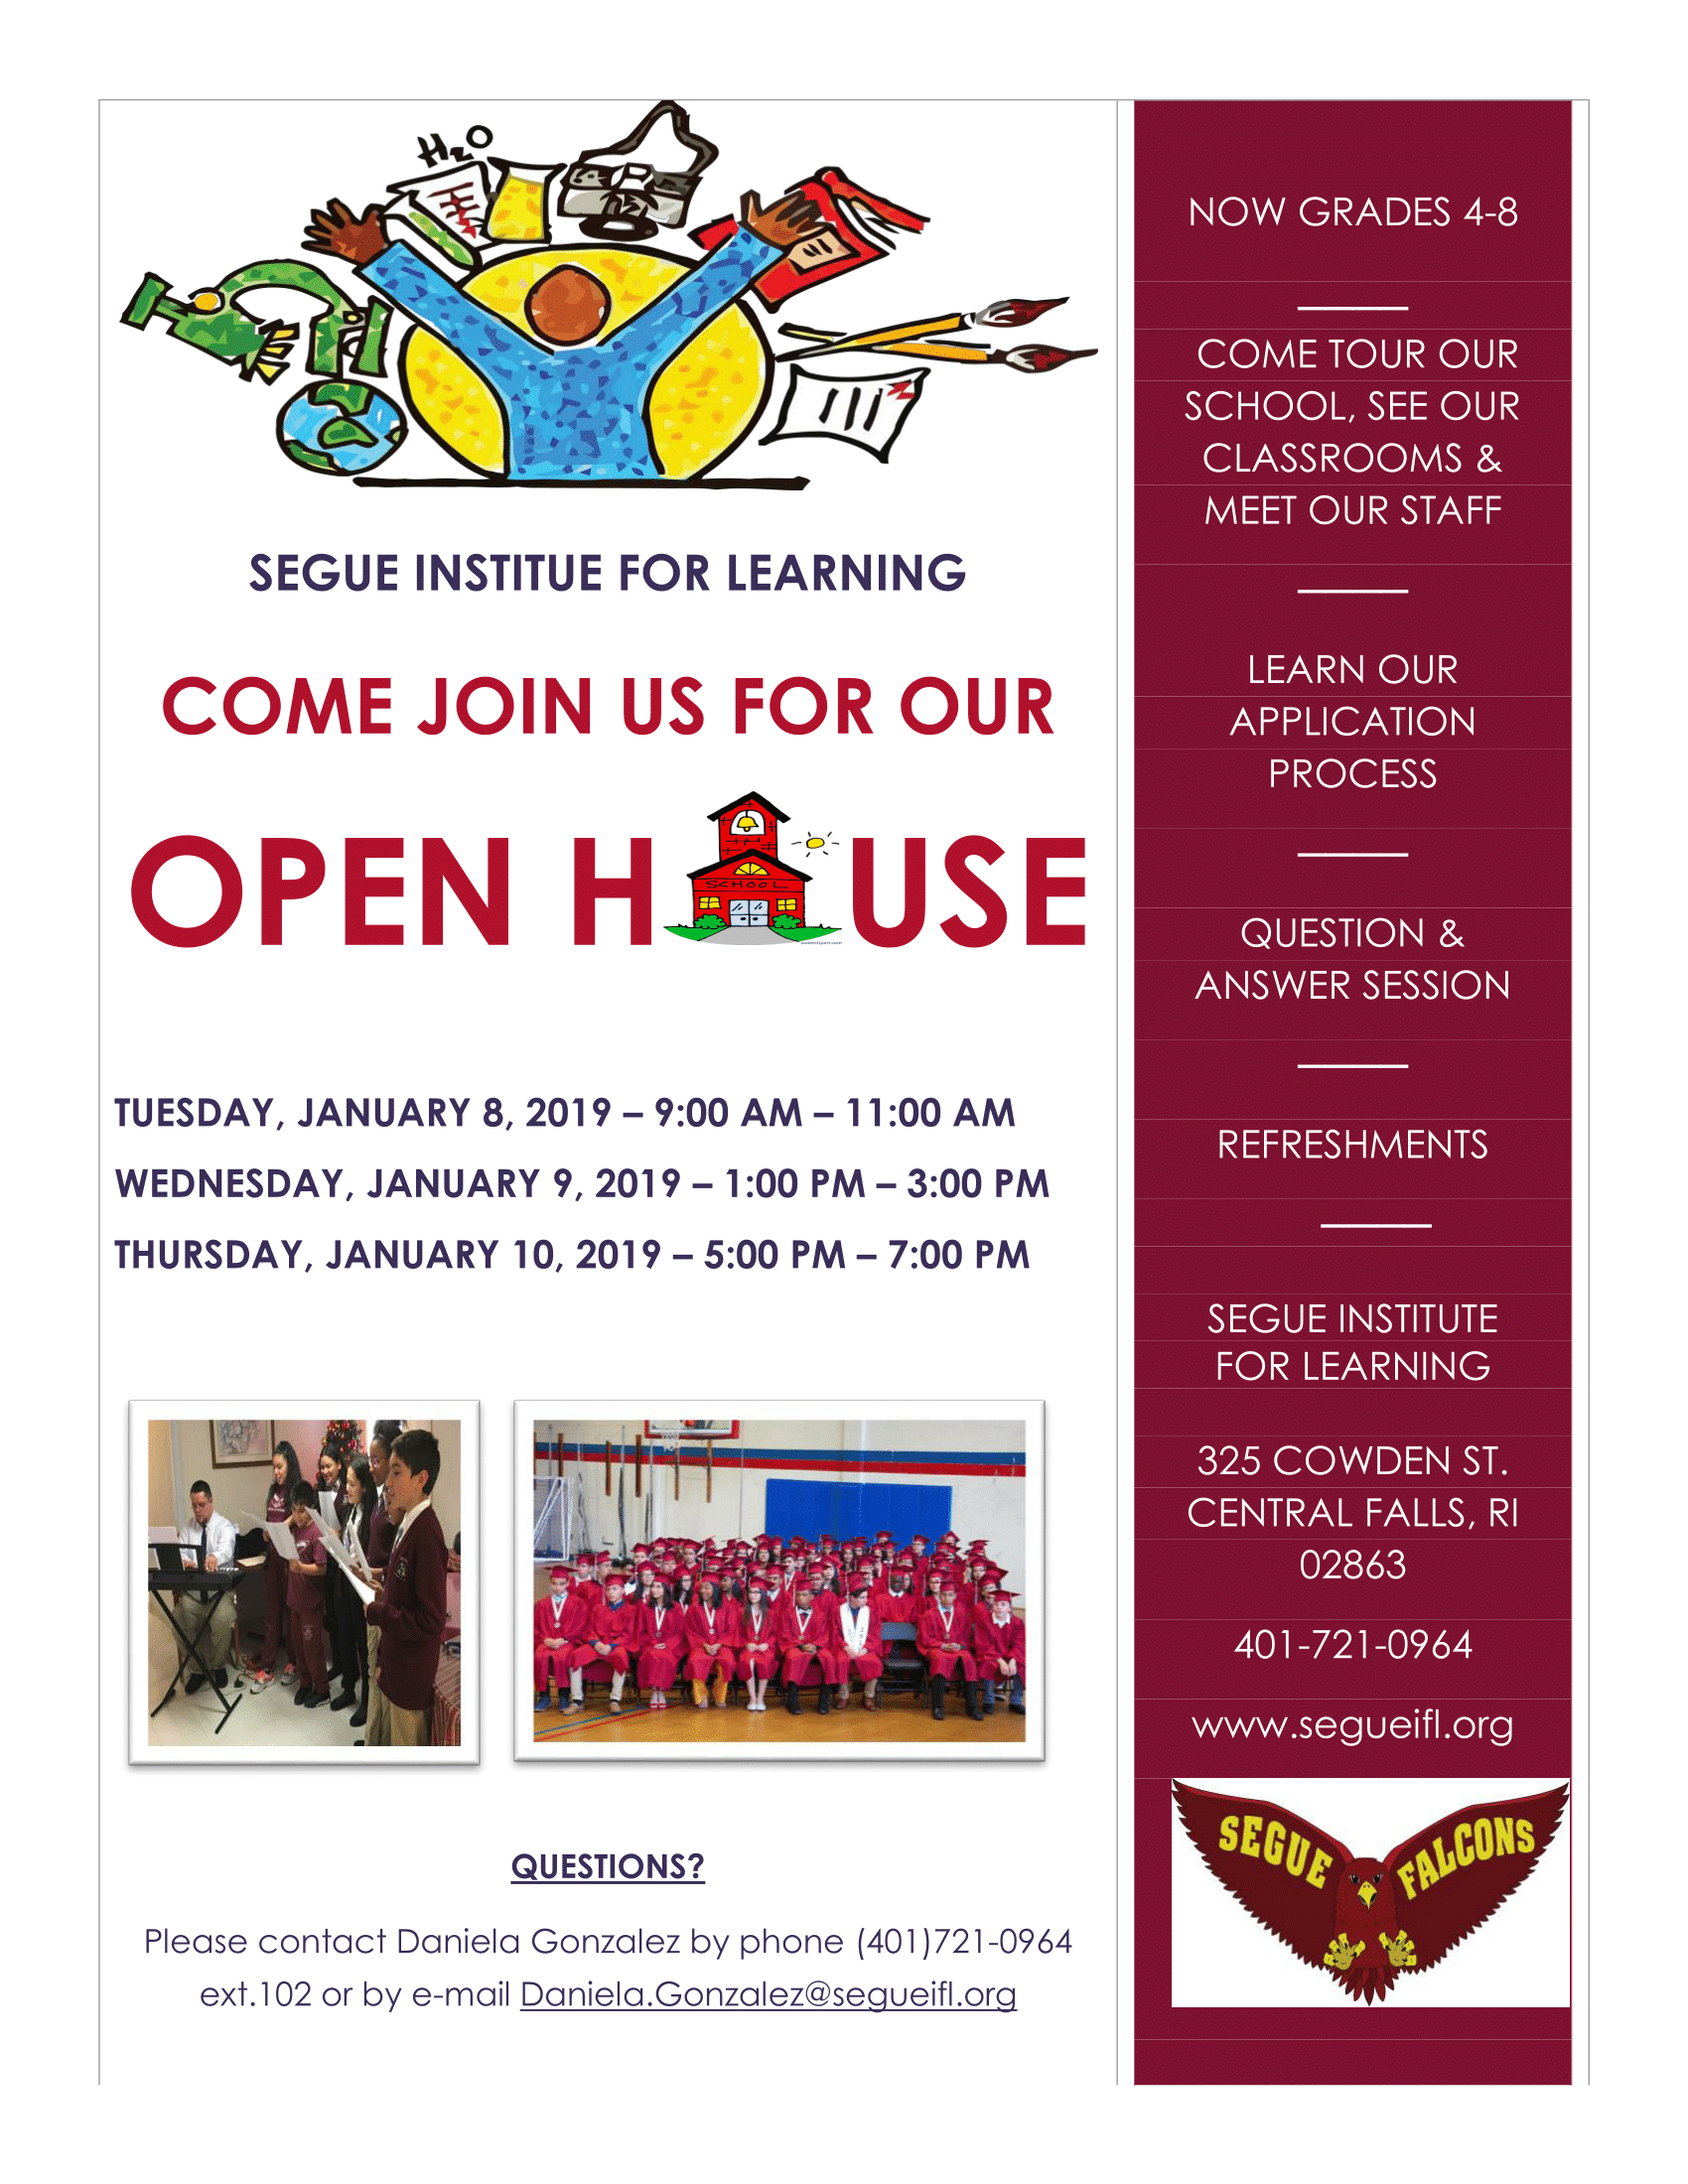 OPEN HOUSE FLYER 2019-1